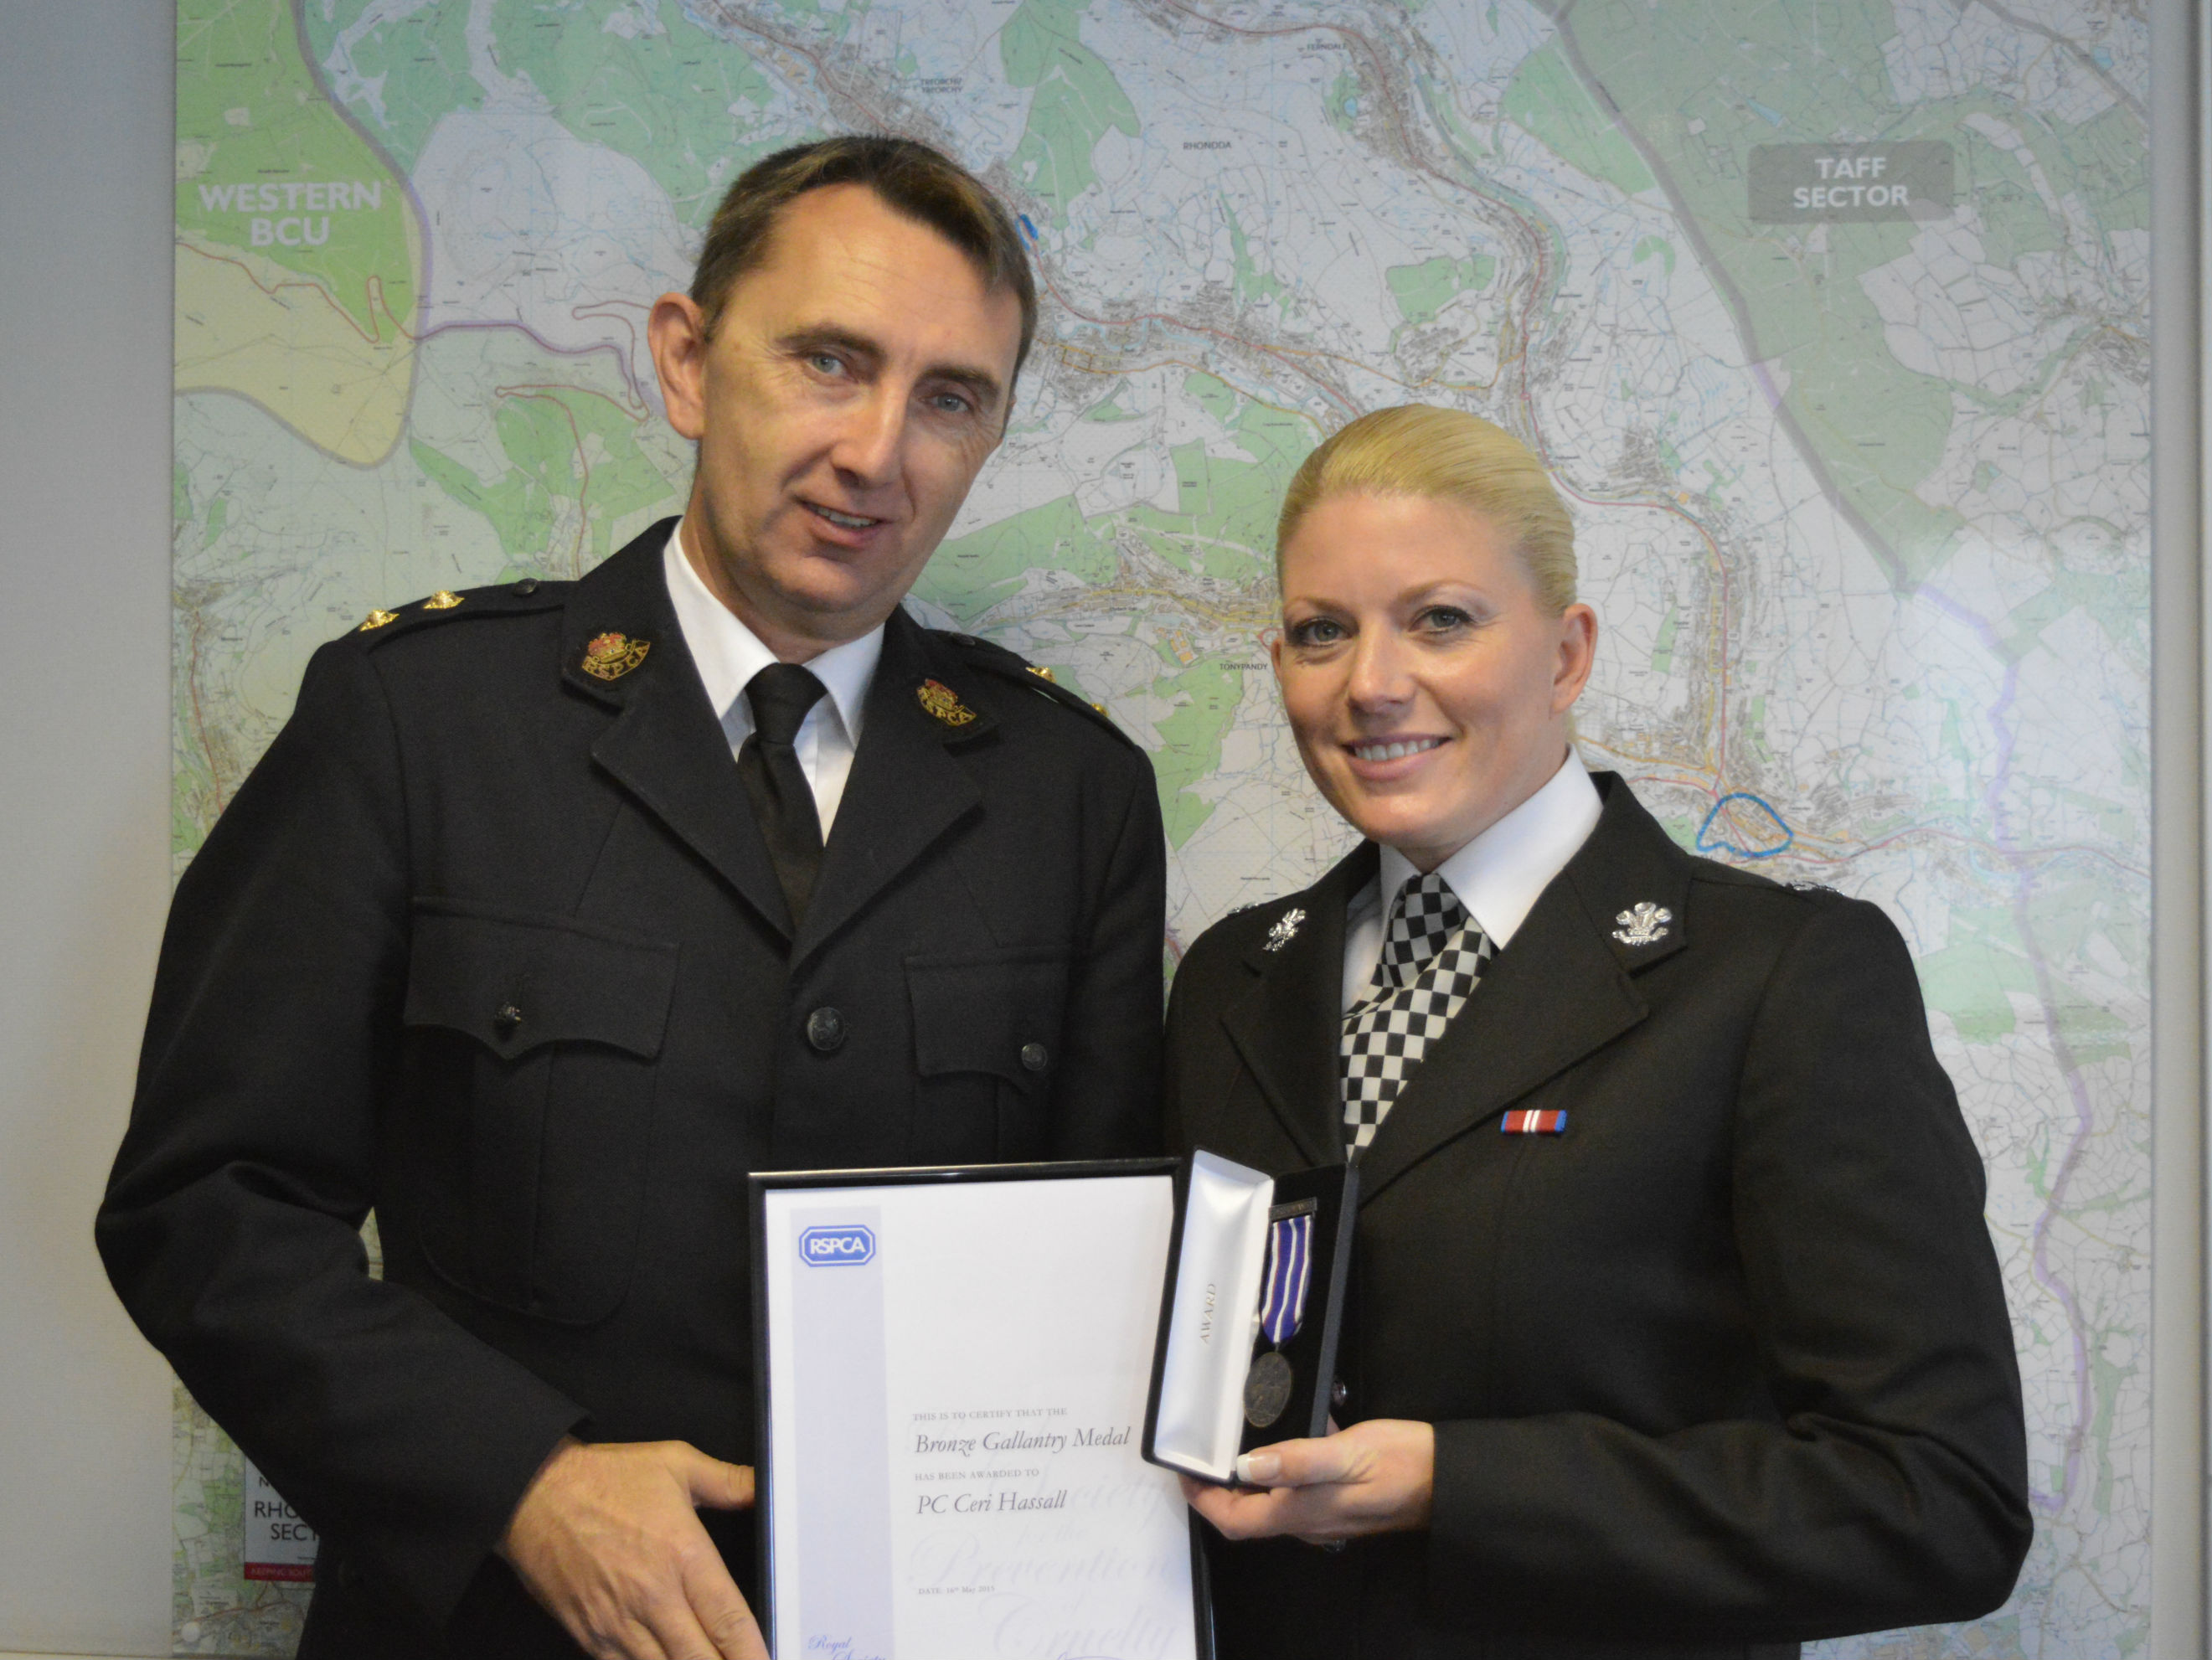 RSPCA inspector Simon Evans and PC Ceri Hassall pic2